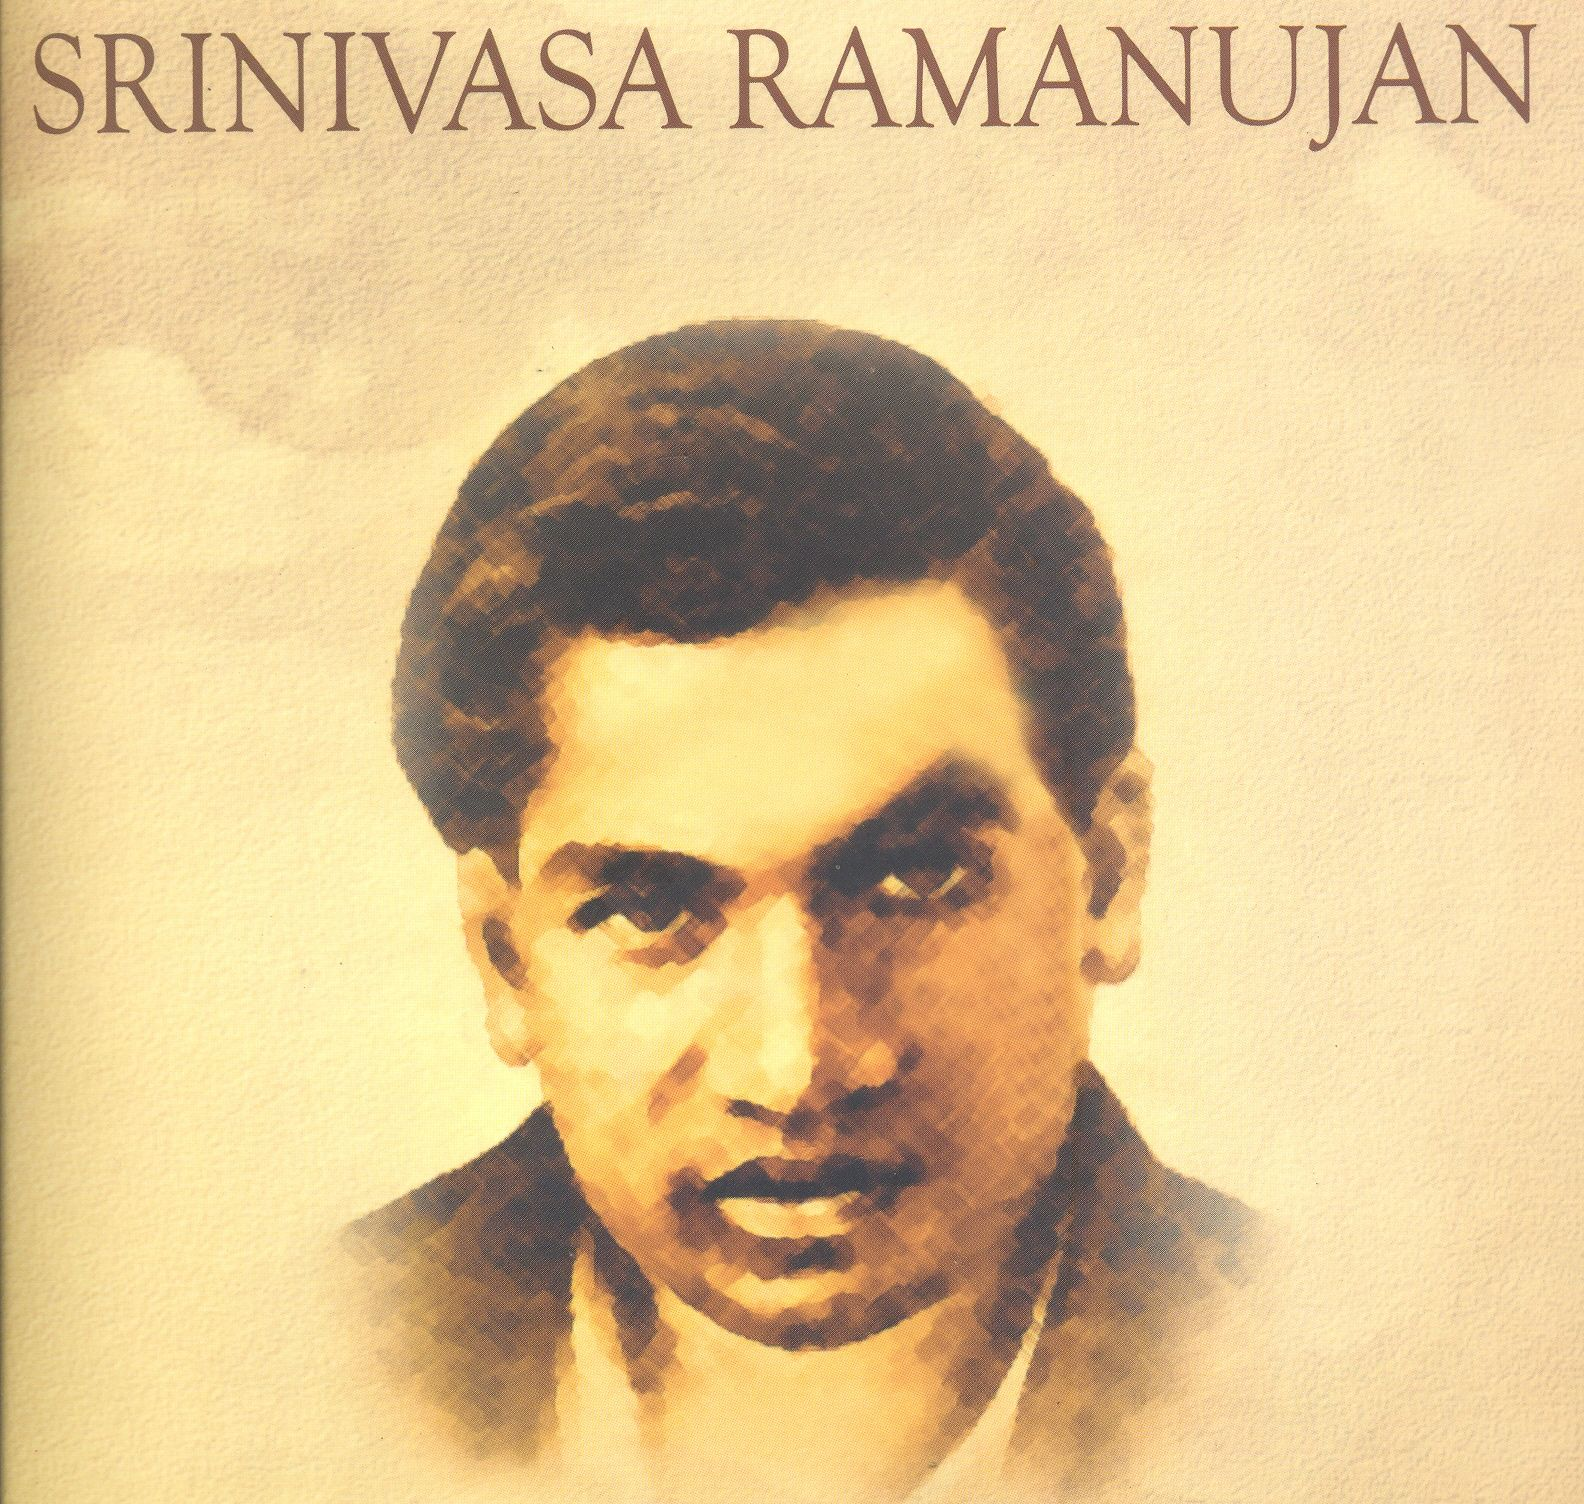 srinivasa ramanujan theorems and discoveries